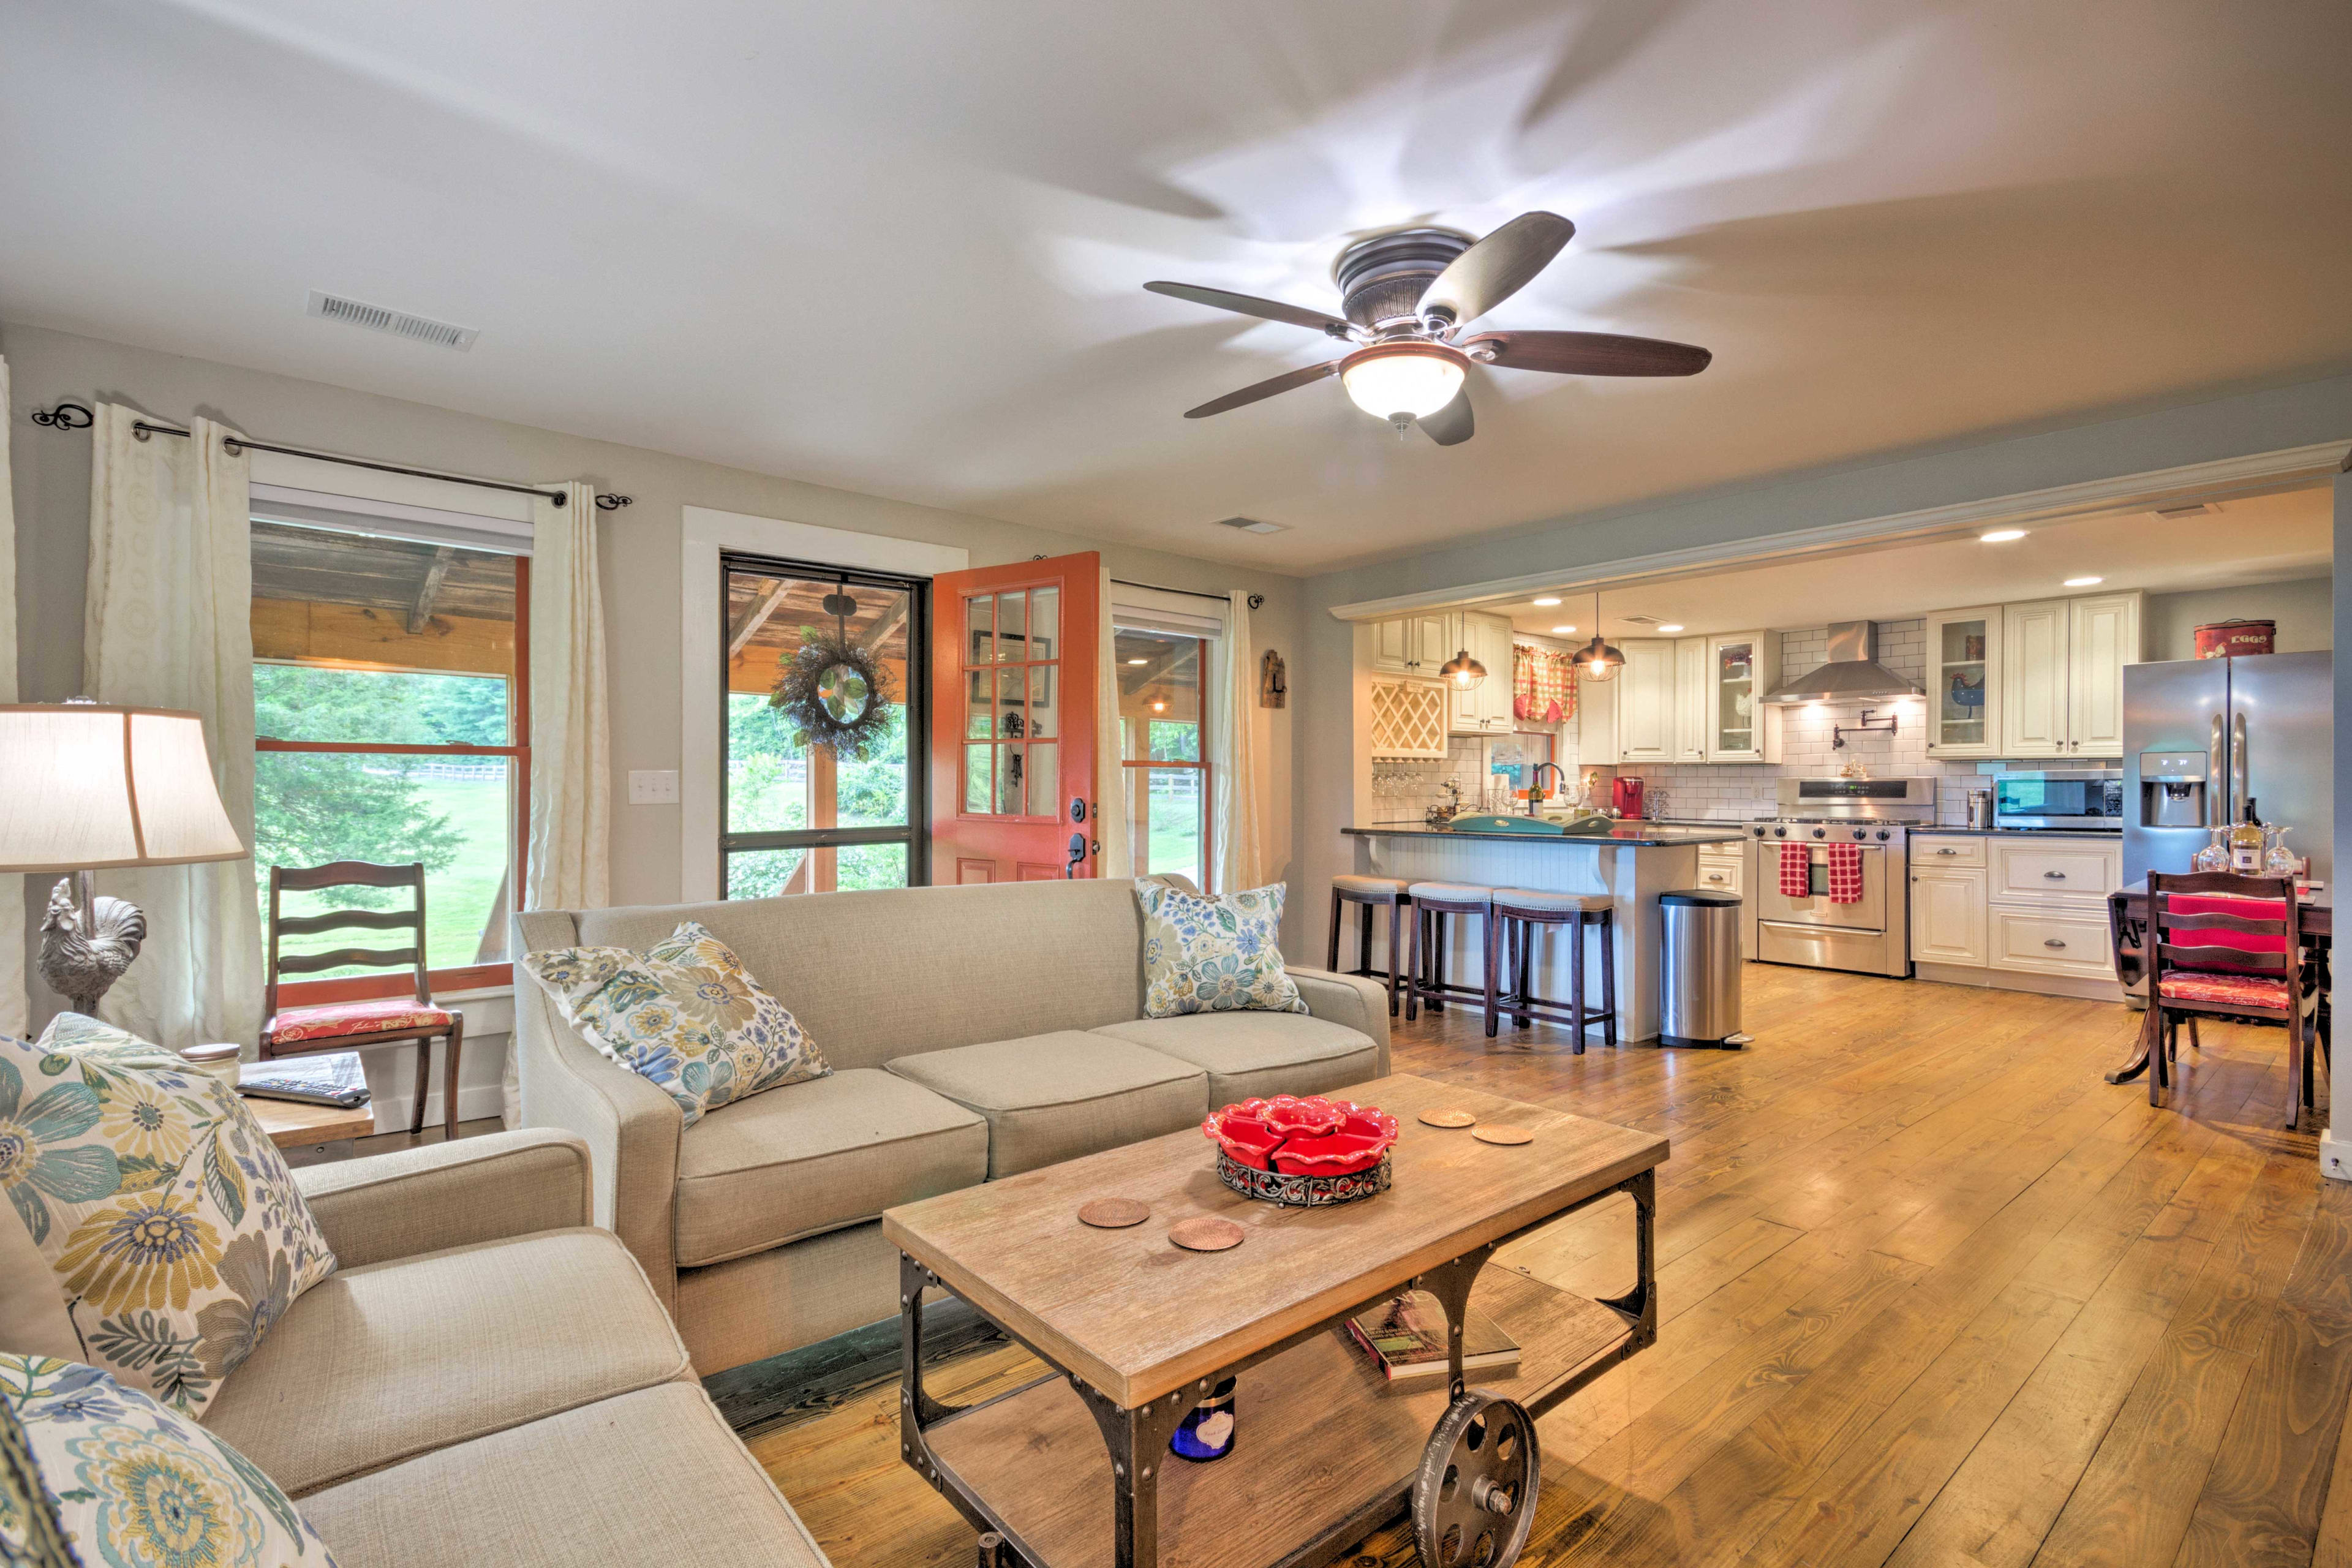 Four lucky travelers can relax inside the 2-bed, 1.5-bath house.